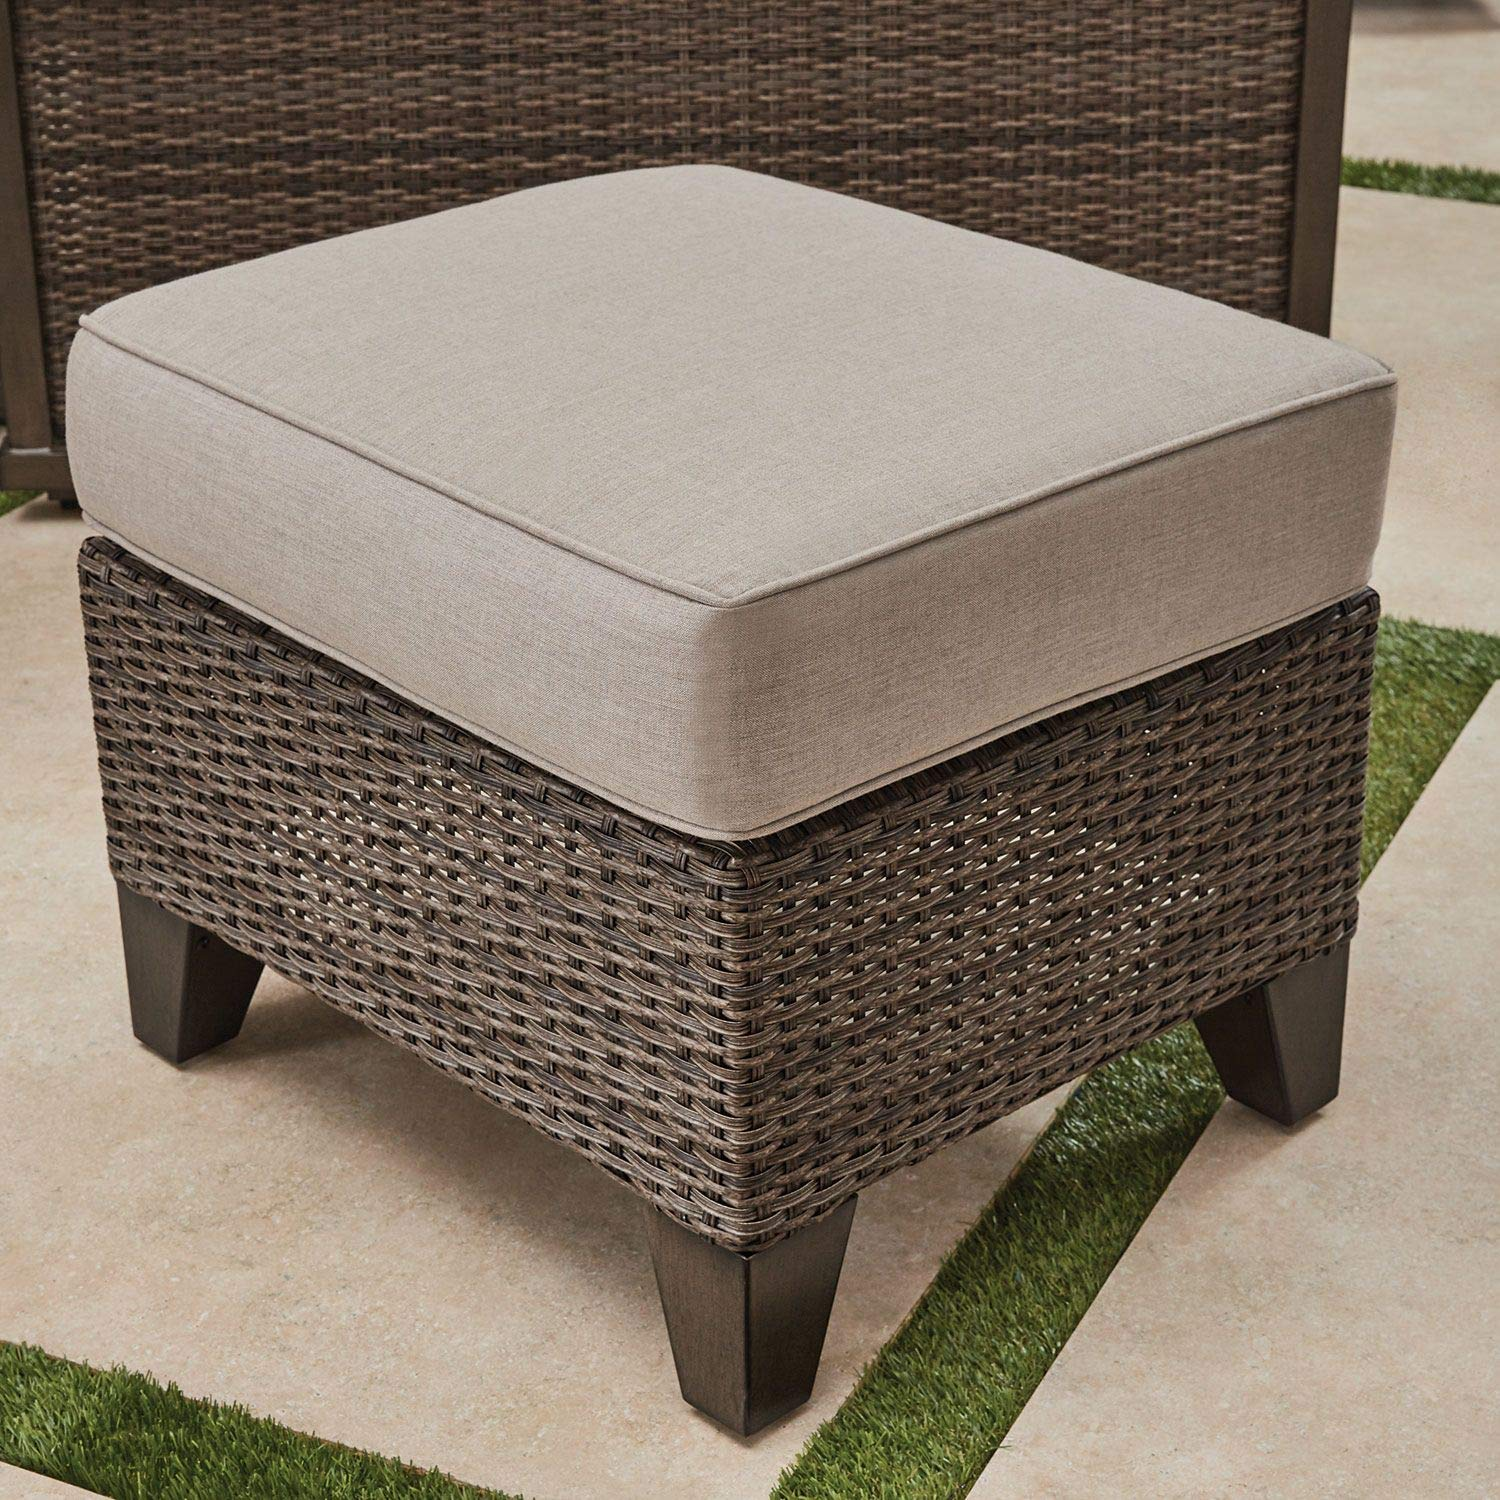 Amazon com agio handwoven all weather wicker outdoor patio 6pc lp gas firepit table seating set garden outdoor